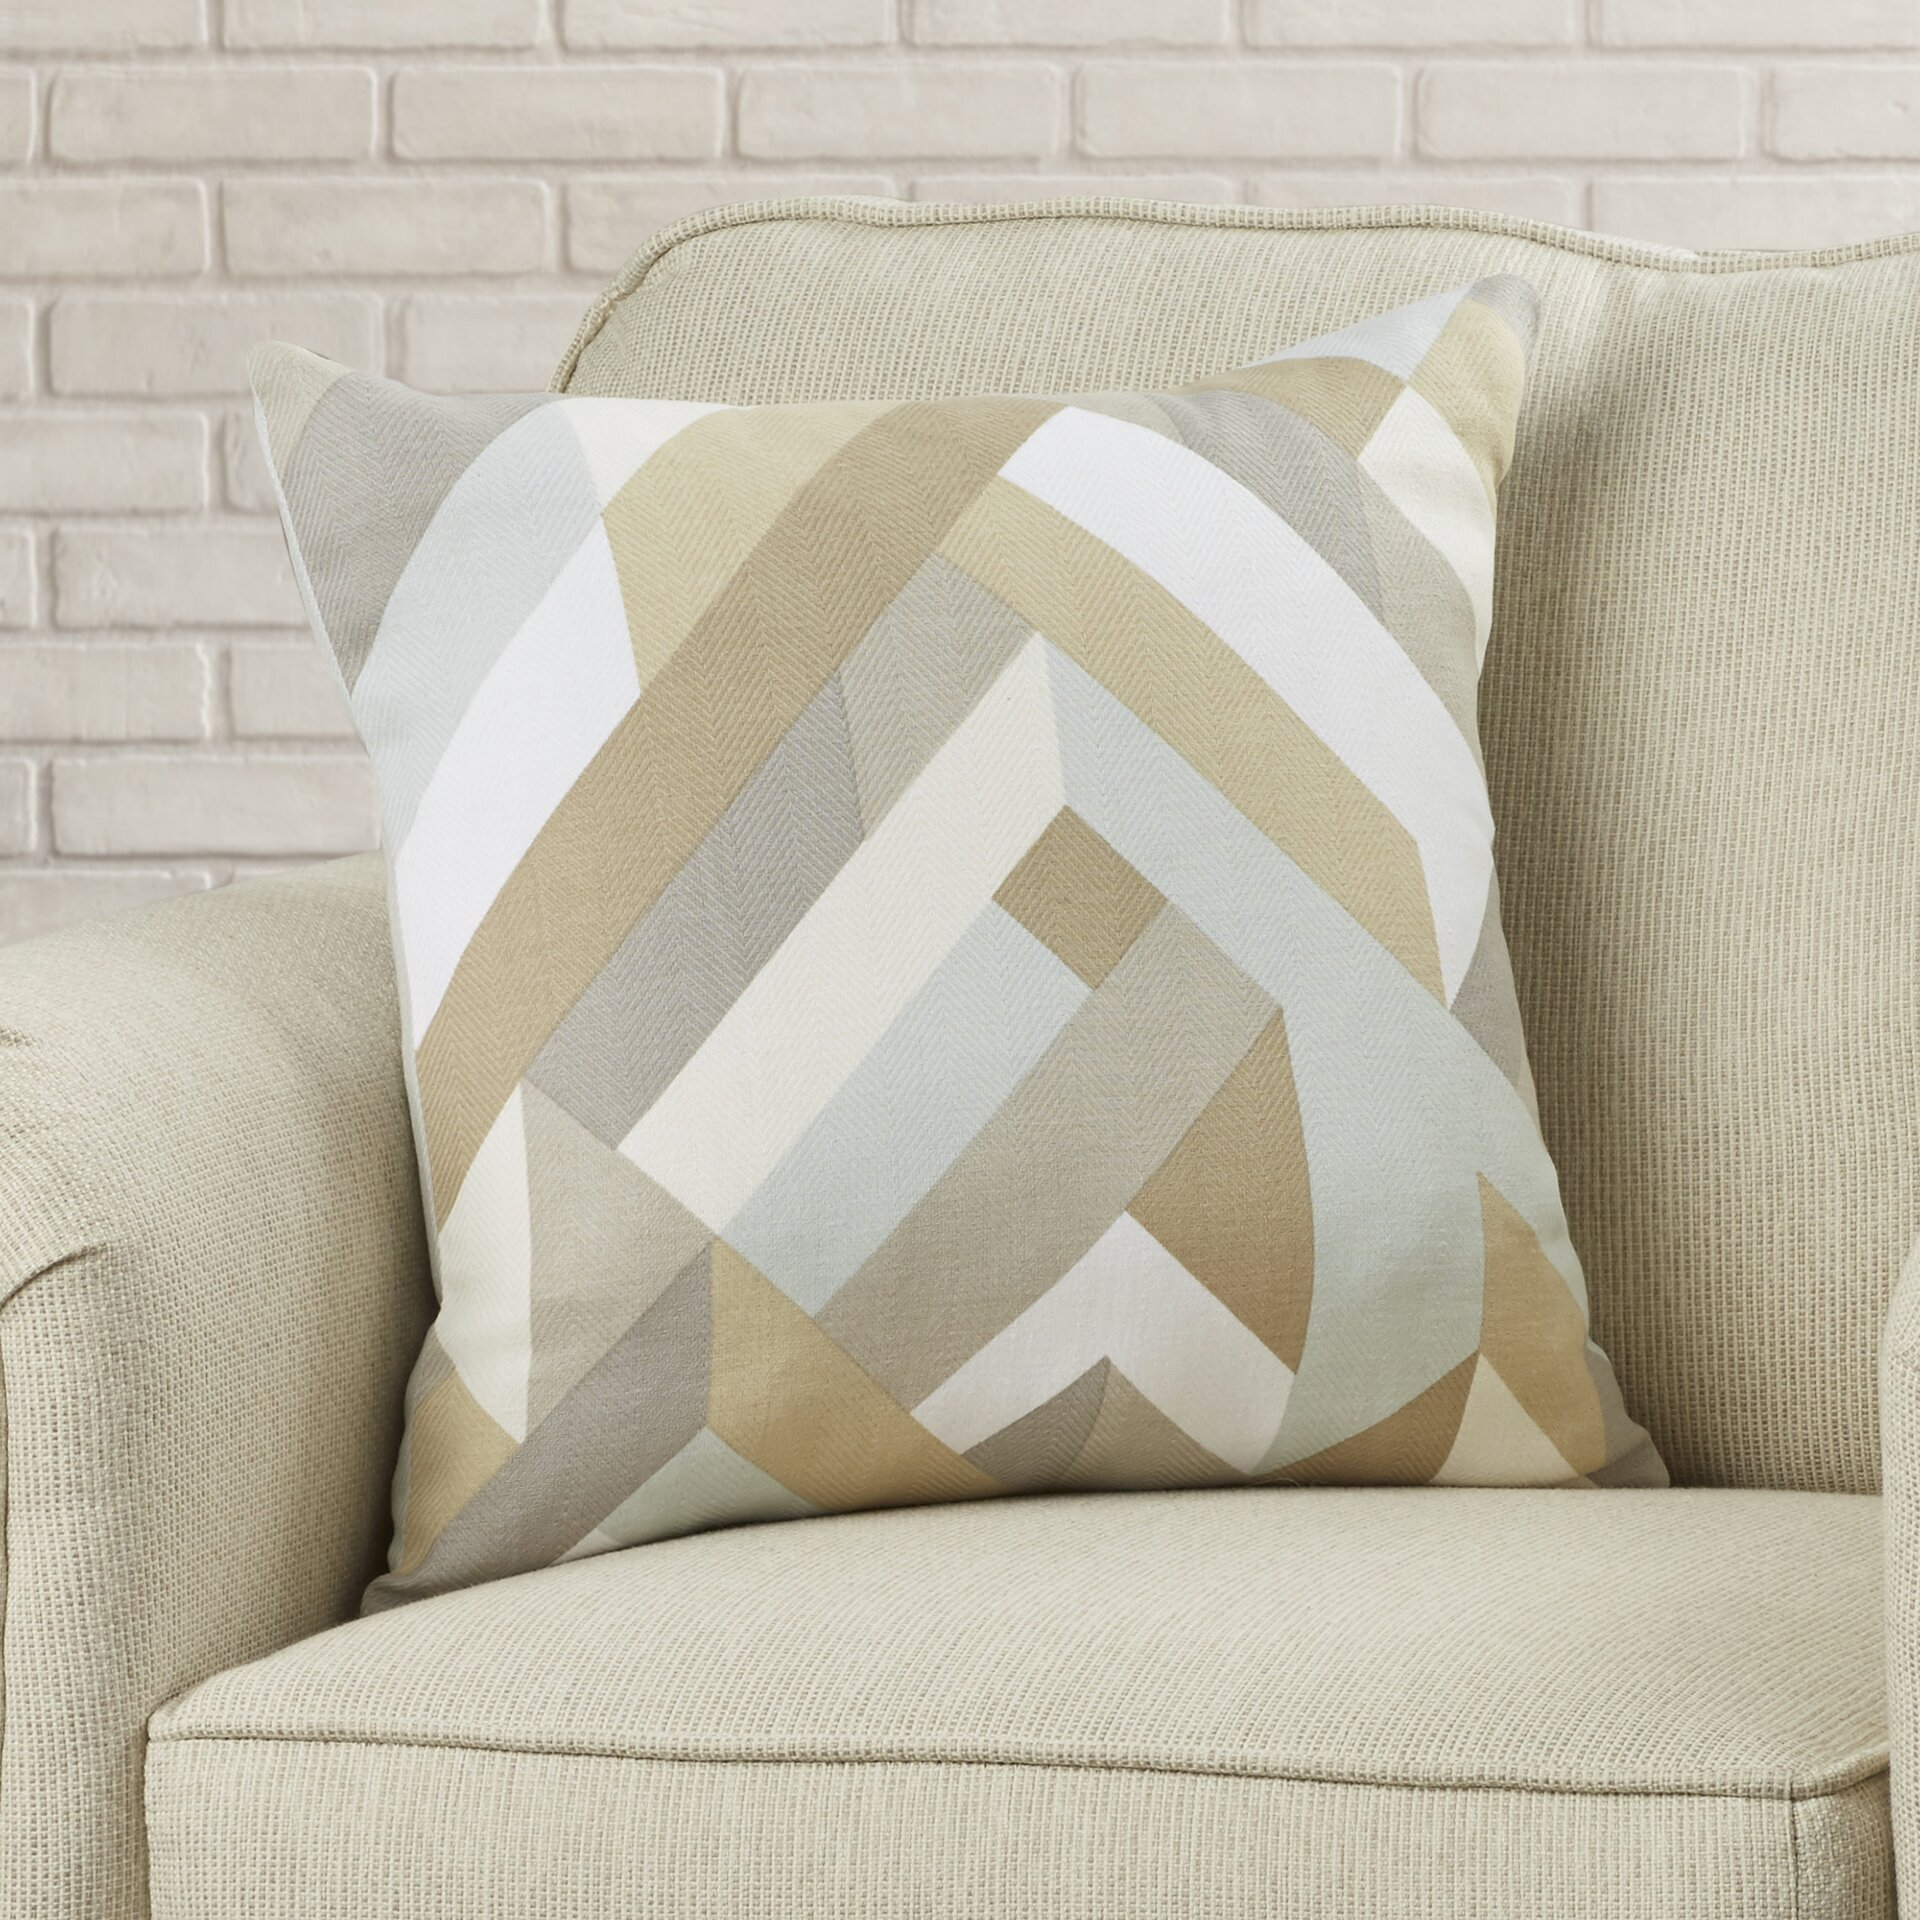 Throw Pillow Gallery : Varick Gallery Mason Throw Pillow & Reviews Wayfair